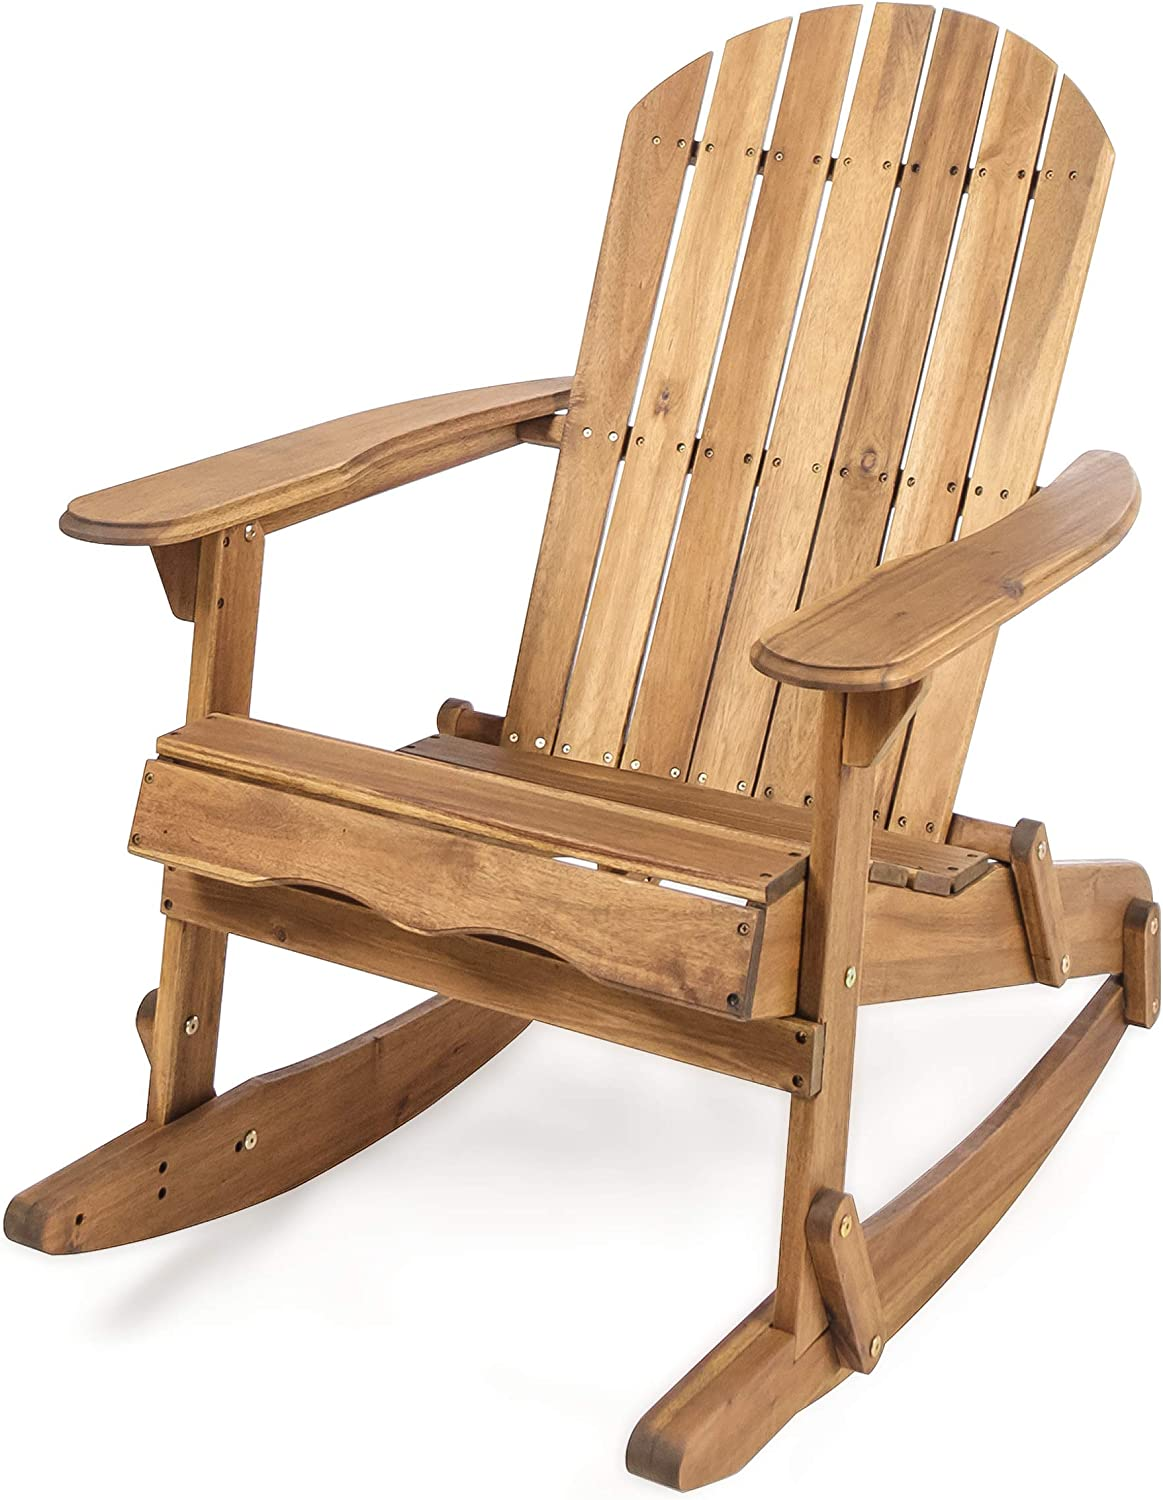 Christopher Knight Home 304034 Muriel Outdoor Natural Finish Acacia Wood Adirondack Rocking Chair, Stained